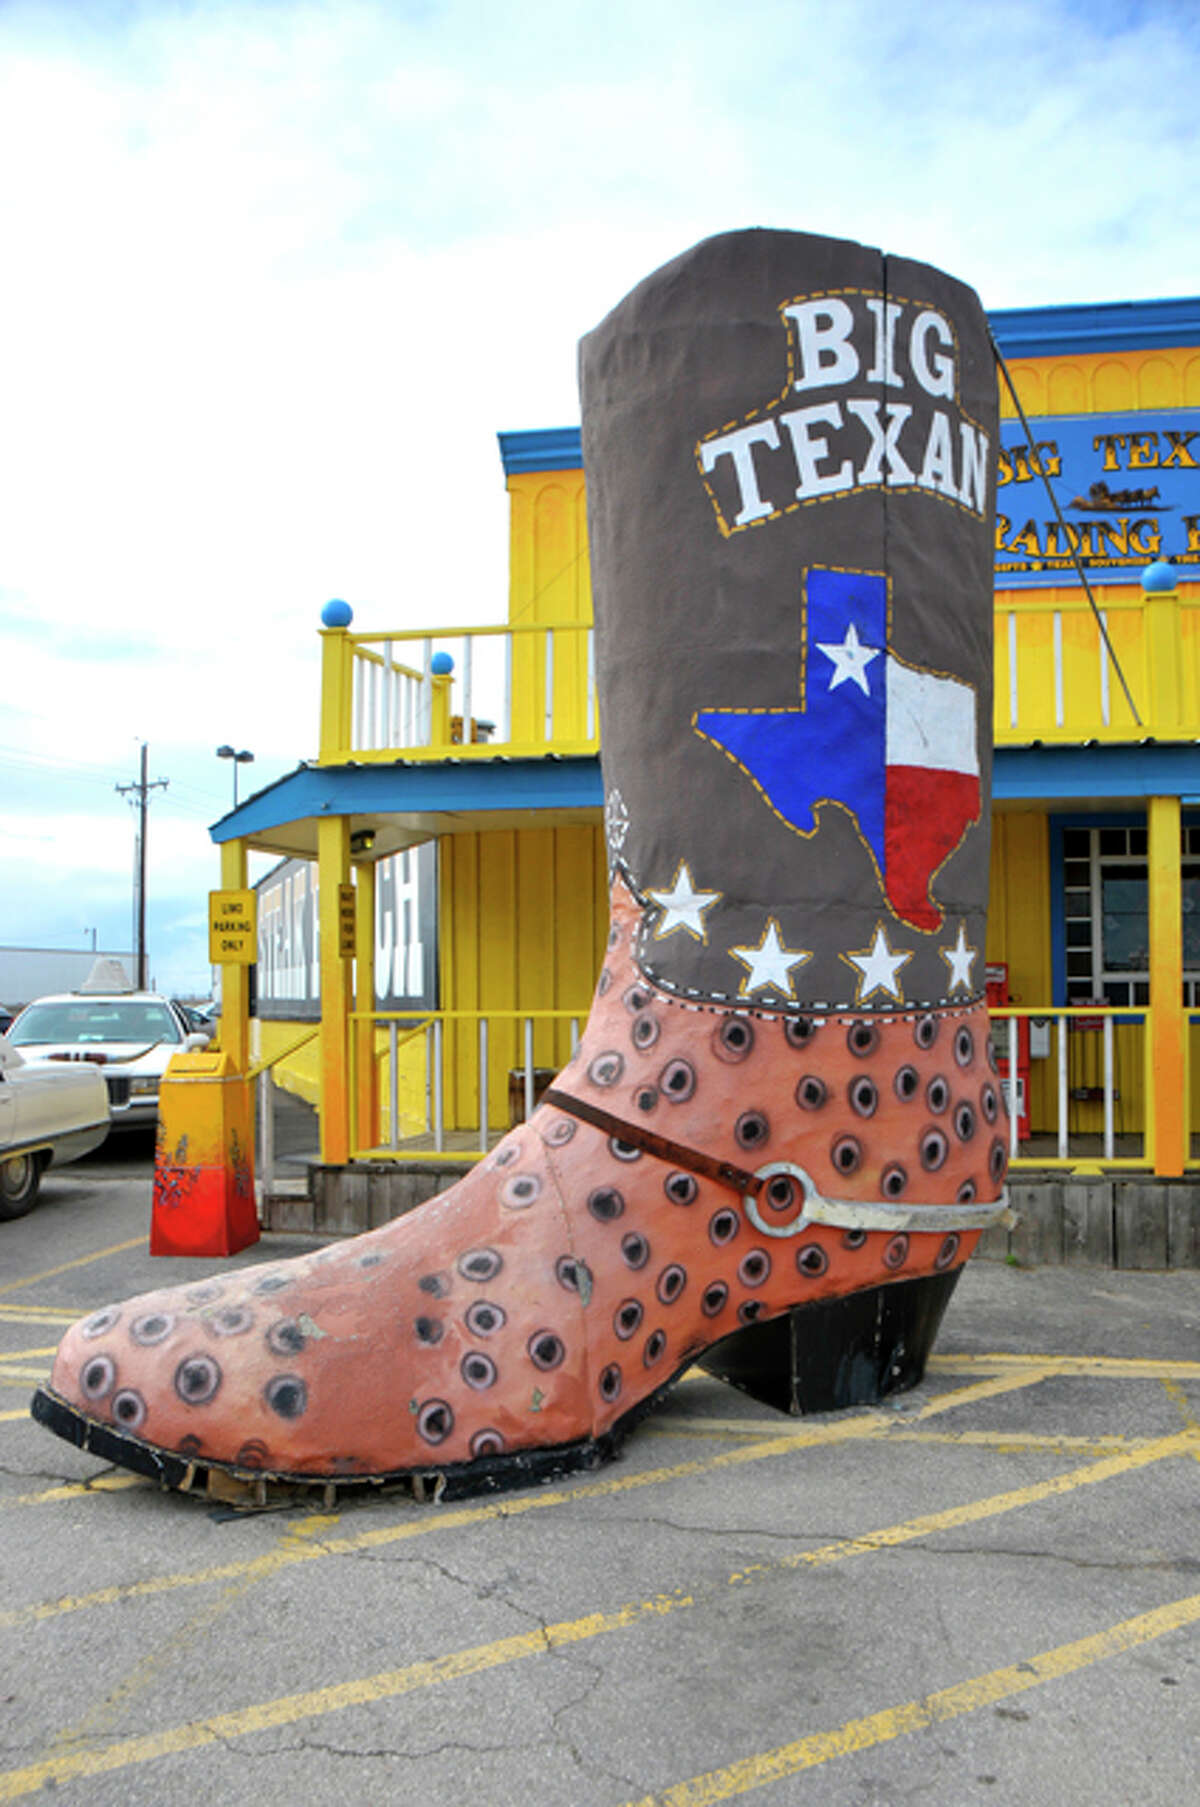 The Big Texan Steak Ranch Amarillo, 7701 Interstate 40 Access Road Downing a 72-ounce steak, priced at $72, will make you a winner. The reward? The pricey piece of meat will be free to anyone who can finish it in one seating.